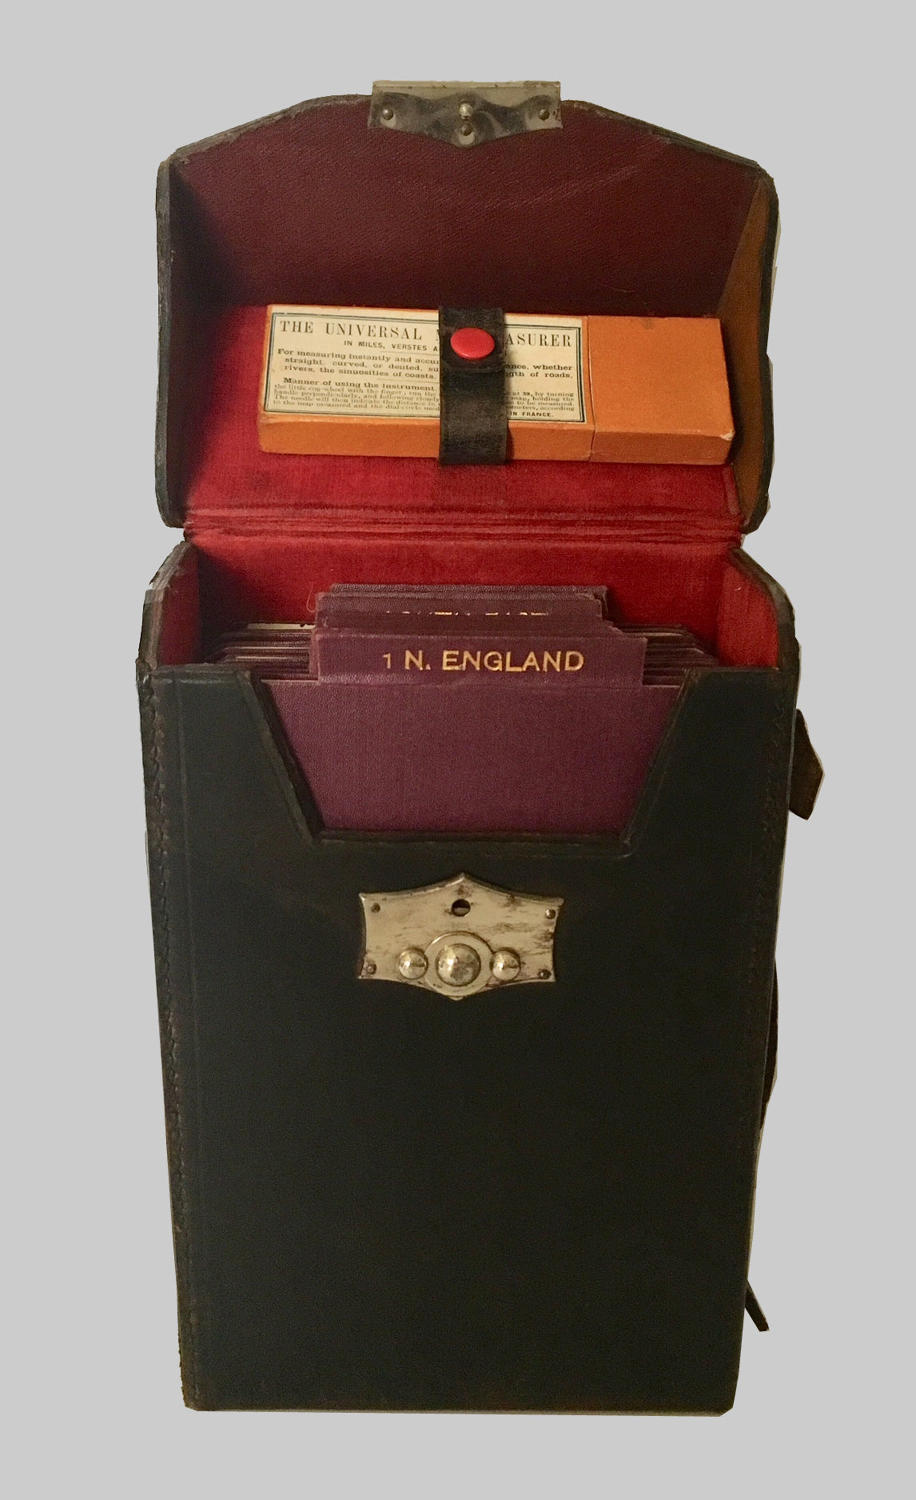 Cased set of Bacon's motor maps of England by G.W.Bacon